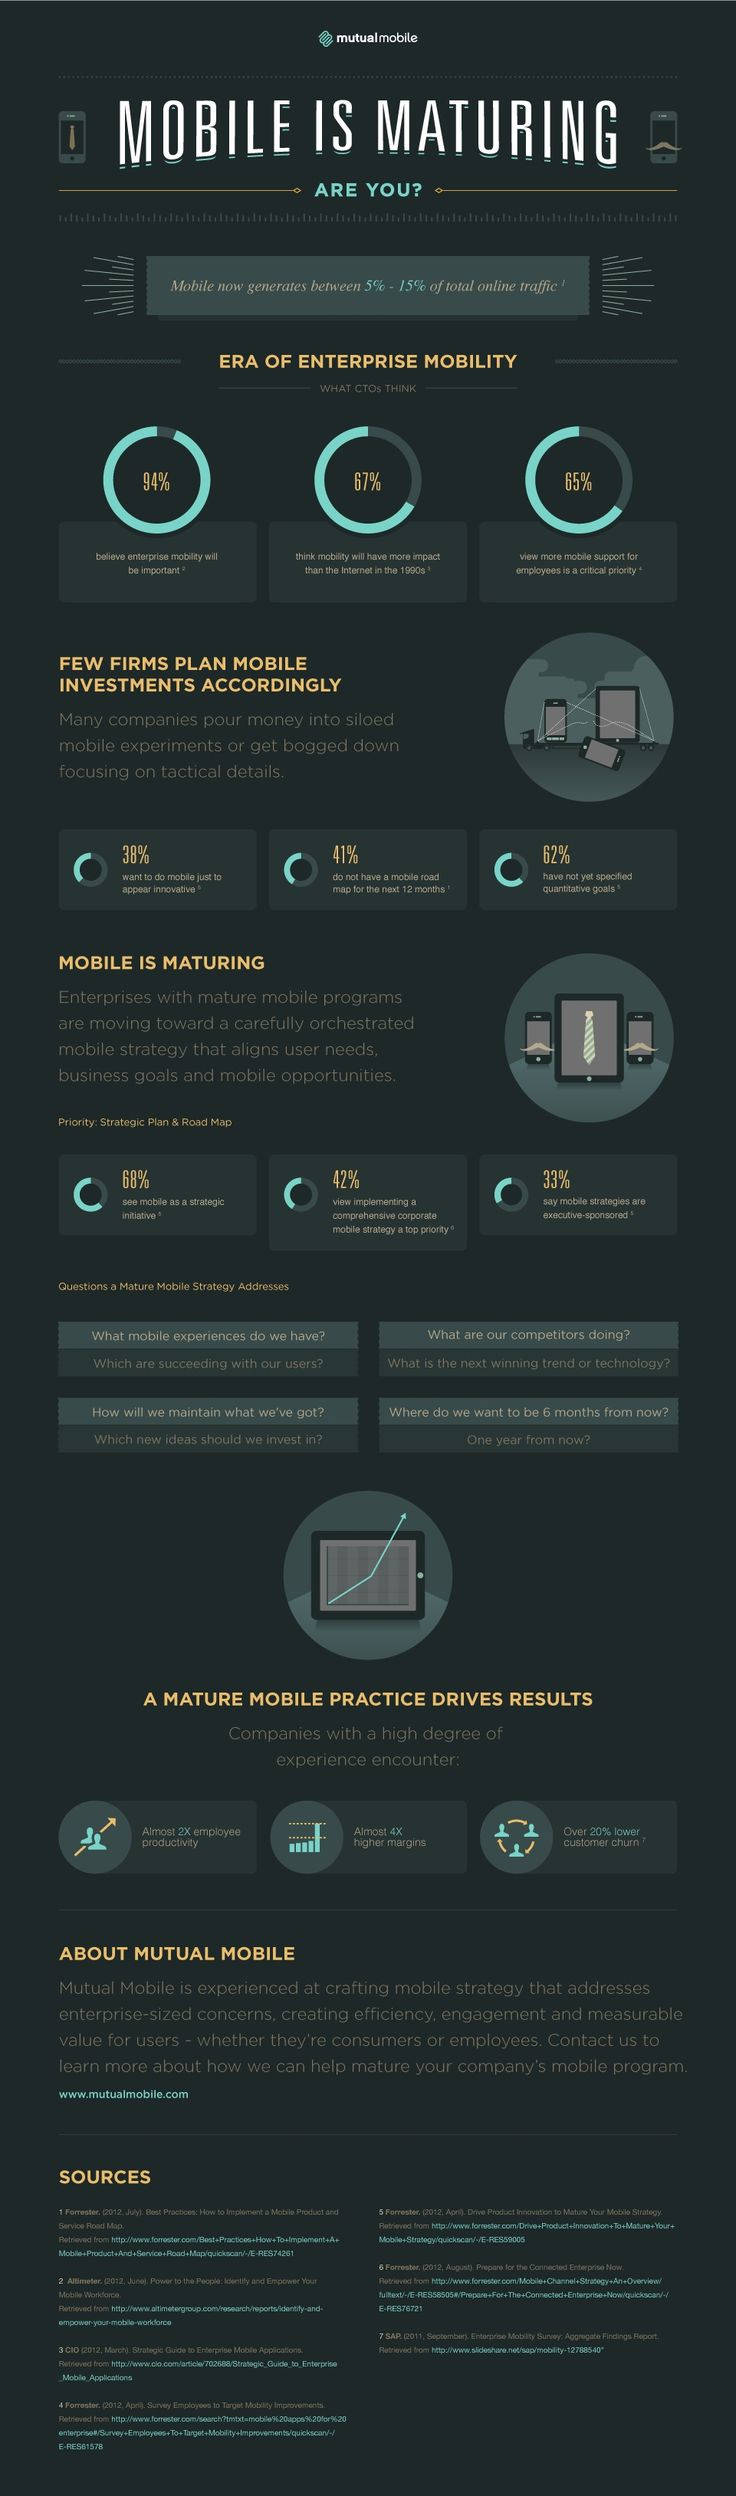 Mobile - Mobile Is Maturing [Infographic] : MarketingProfs Article